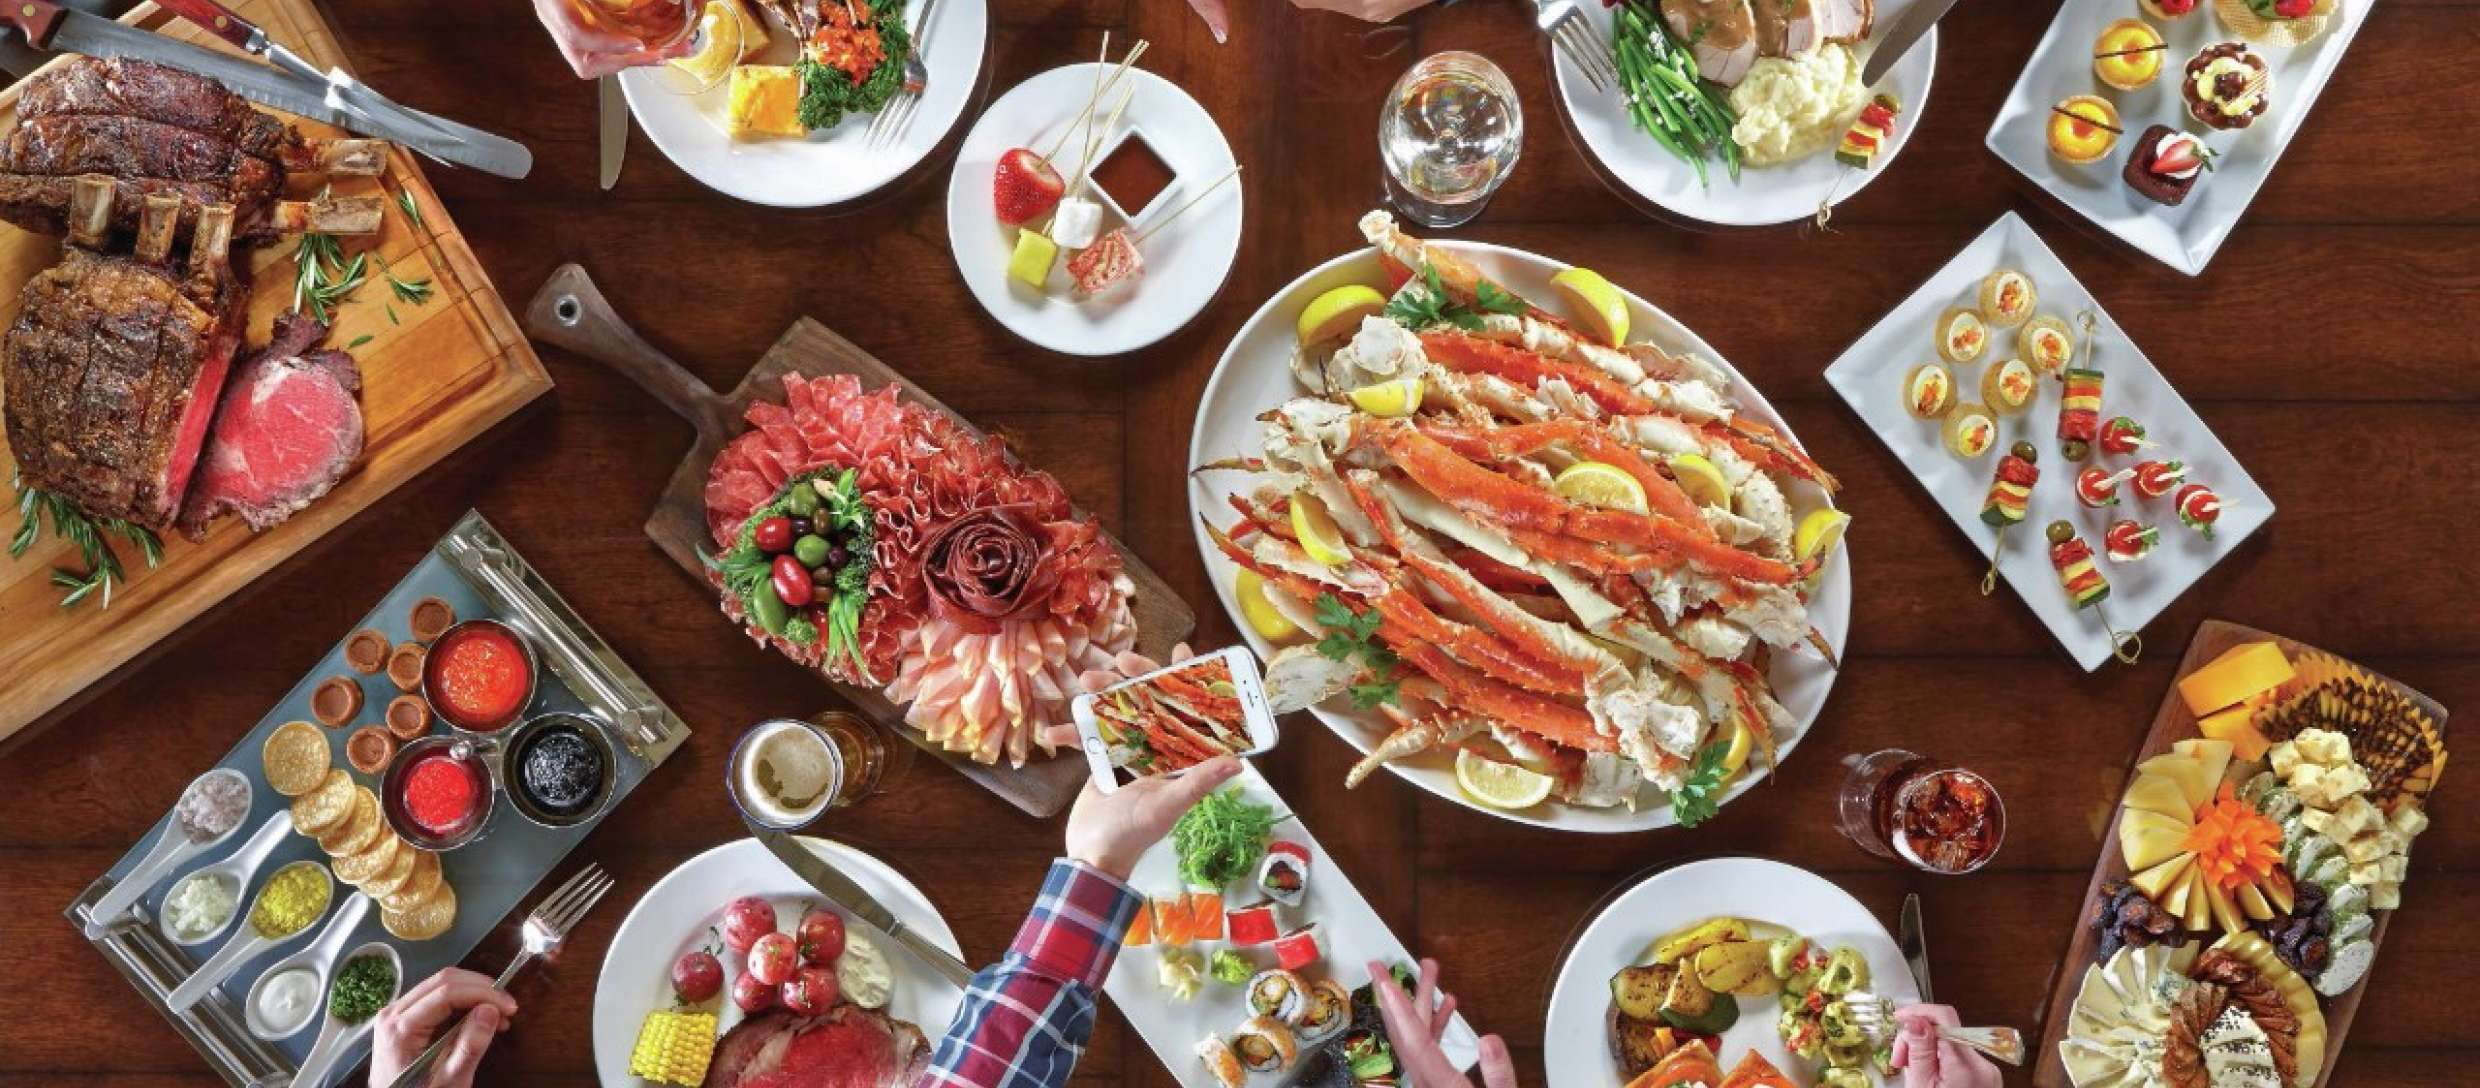 An overhead shot of crab legs, charcuterie, and more dishes